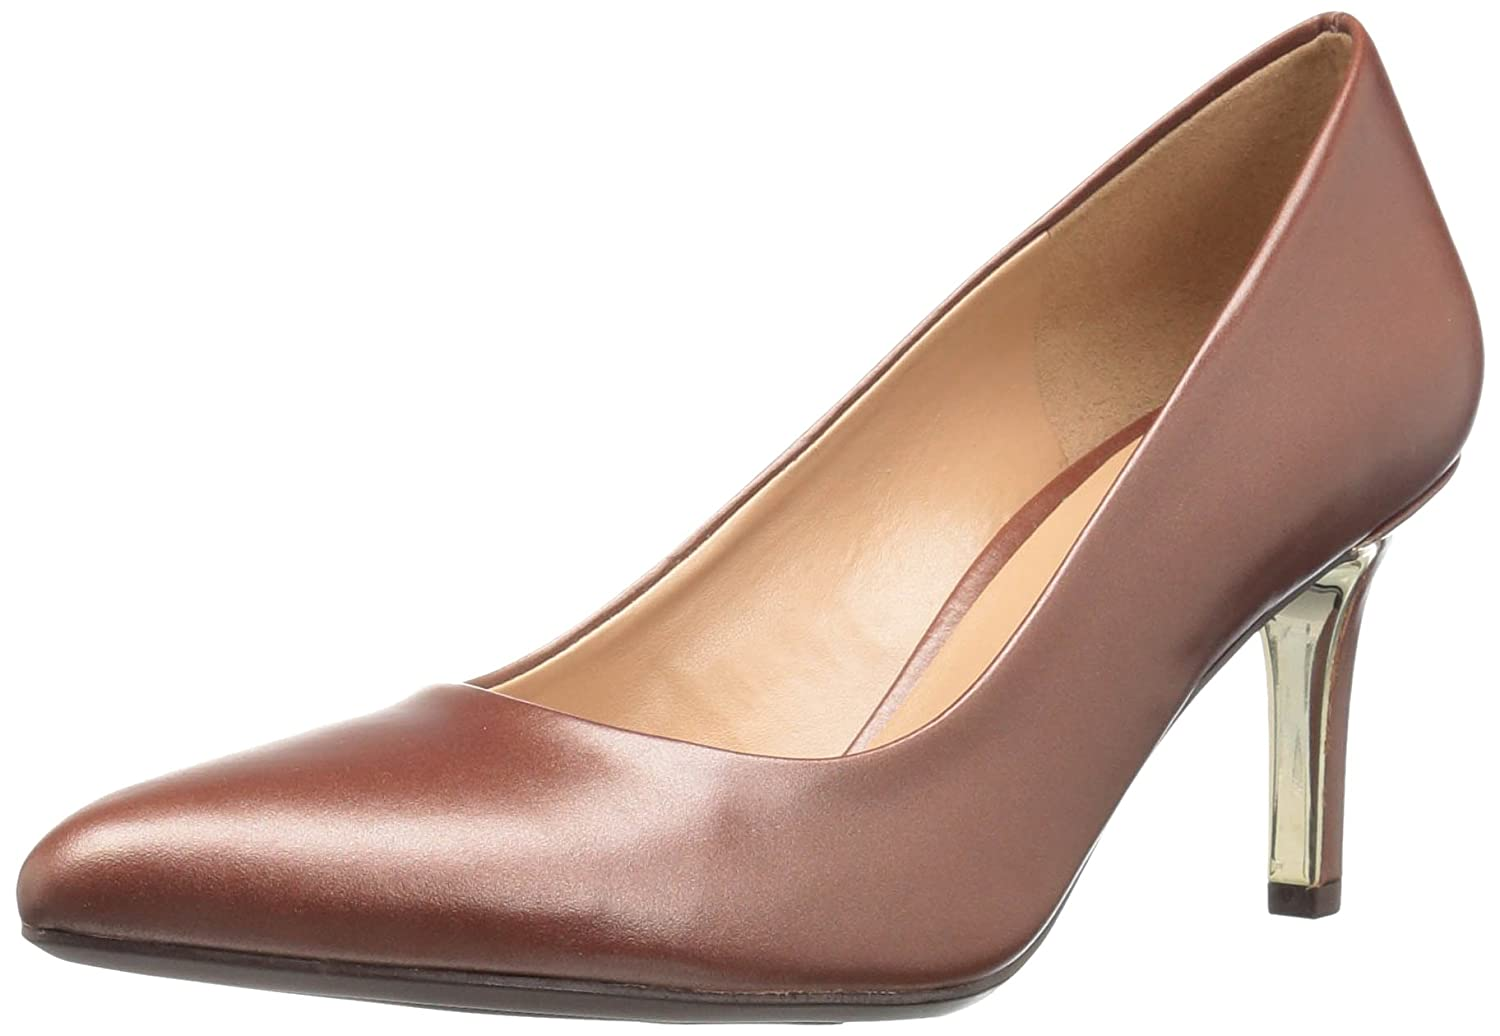 Naturalizer Womens Natalie Pointed Toe Leather Classic Pumps B01I2PHEWQ 8.5 2W US|キャラメル キャラメル 8.5 2W US